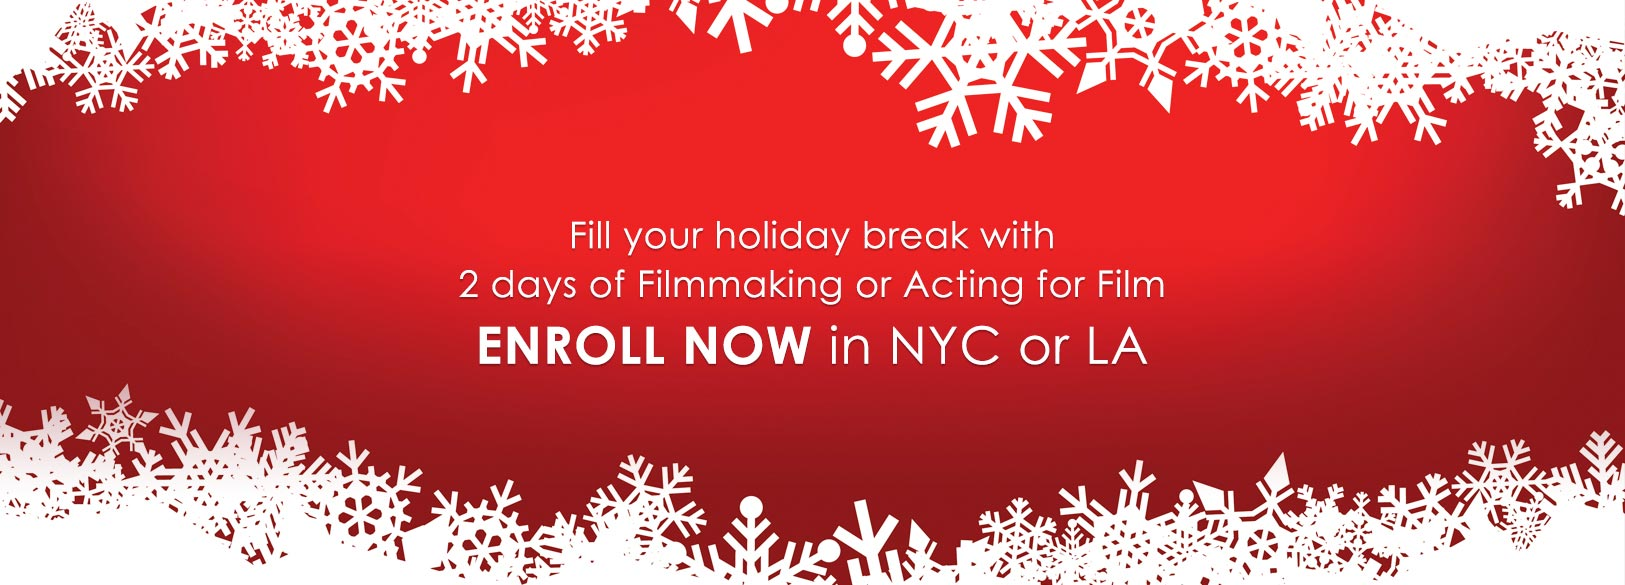 summer-camps-2day-holiday-banner - New York Film Academy Summer Camp